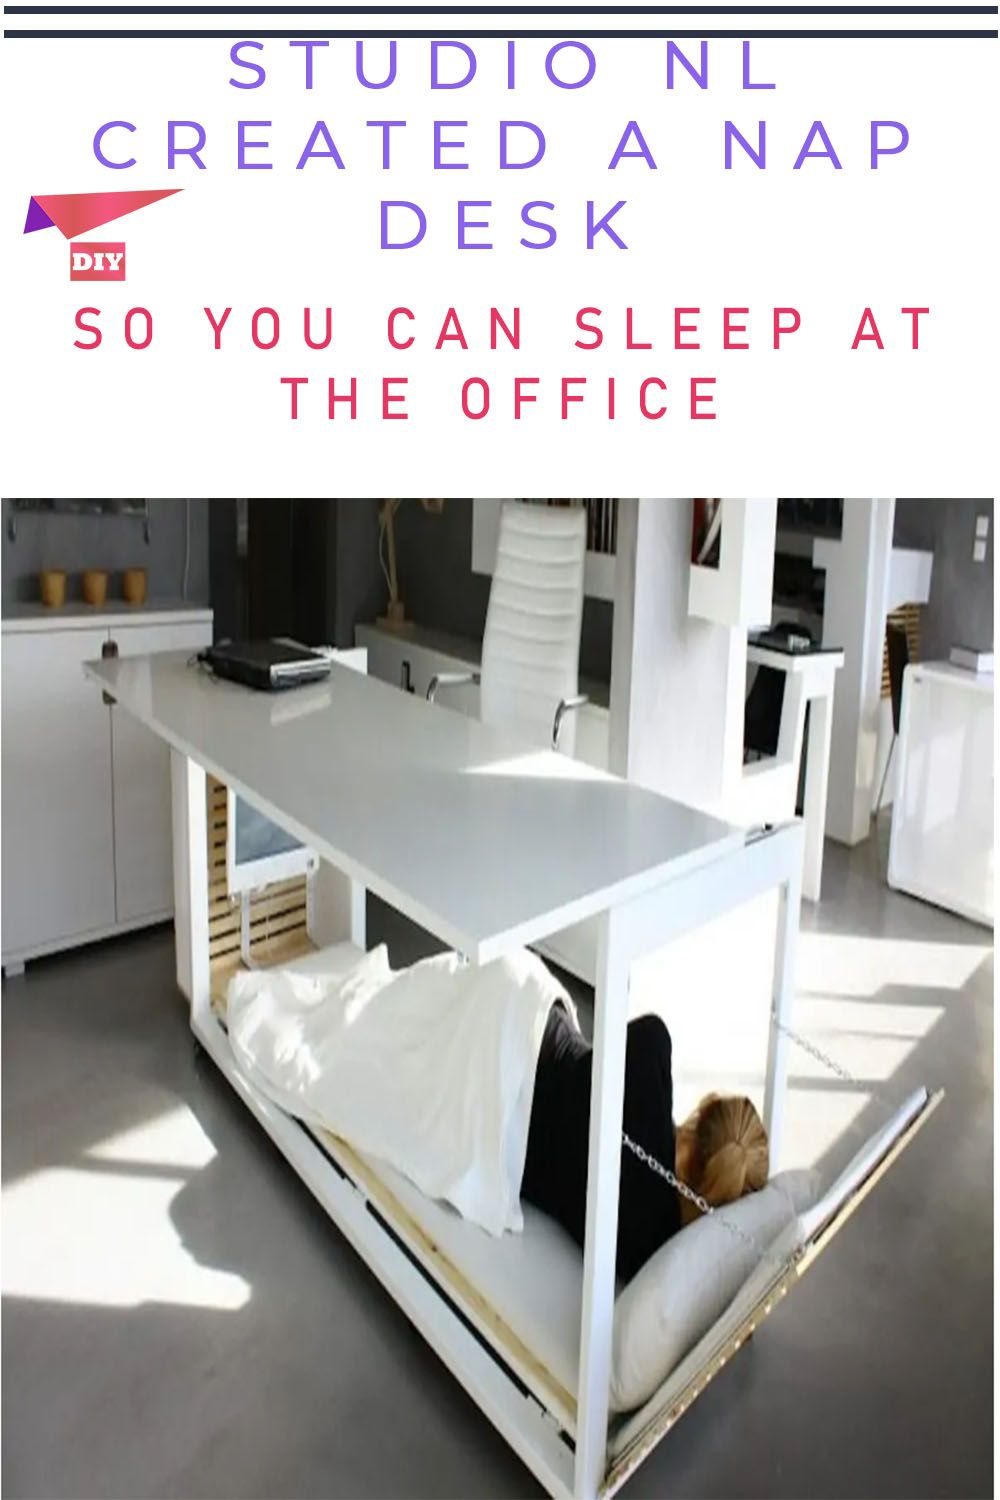 Studio Nl Created A Nap Desk So You Can Sleep At The Office In 2020 Diy Life Hacks Diy Life Diy Crafts For Girls